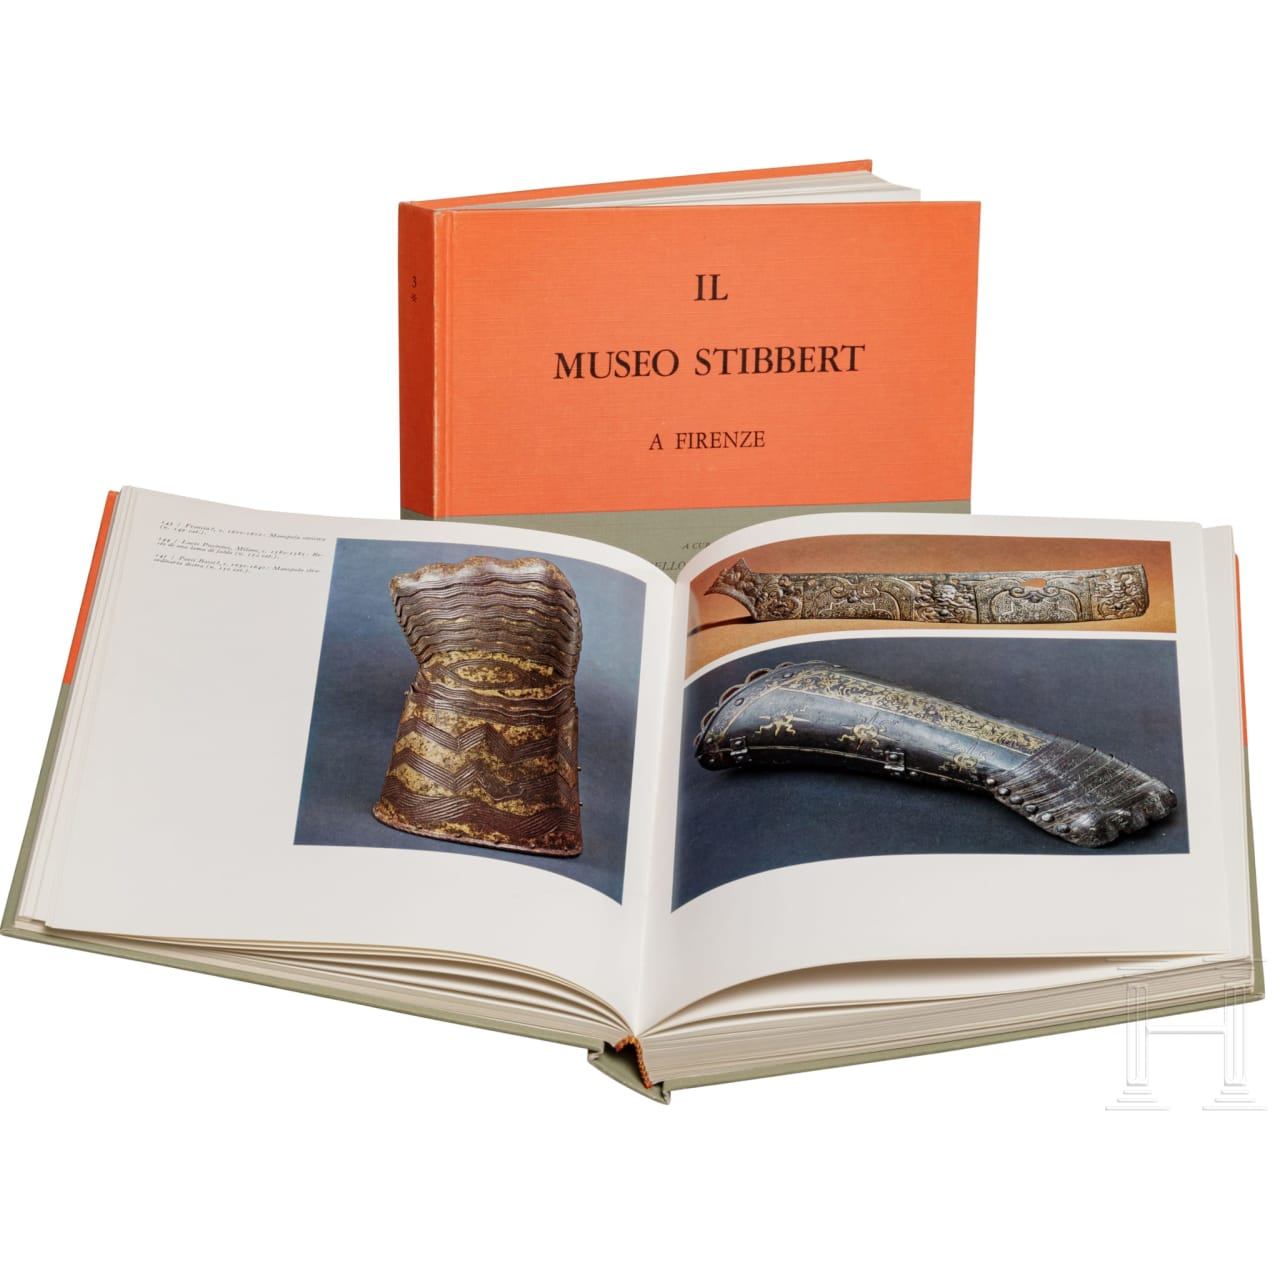 """Il Museo Stibbert"", Vol. III, Part 1 and 2, Florence, 1975"